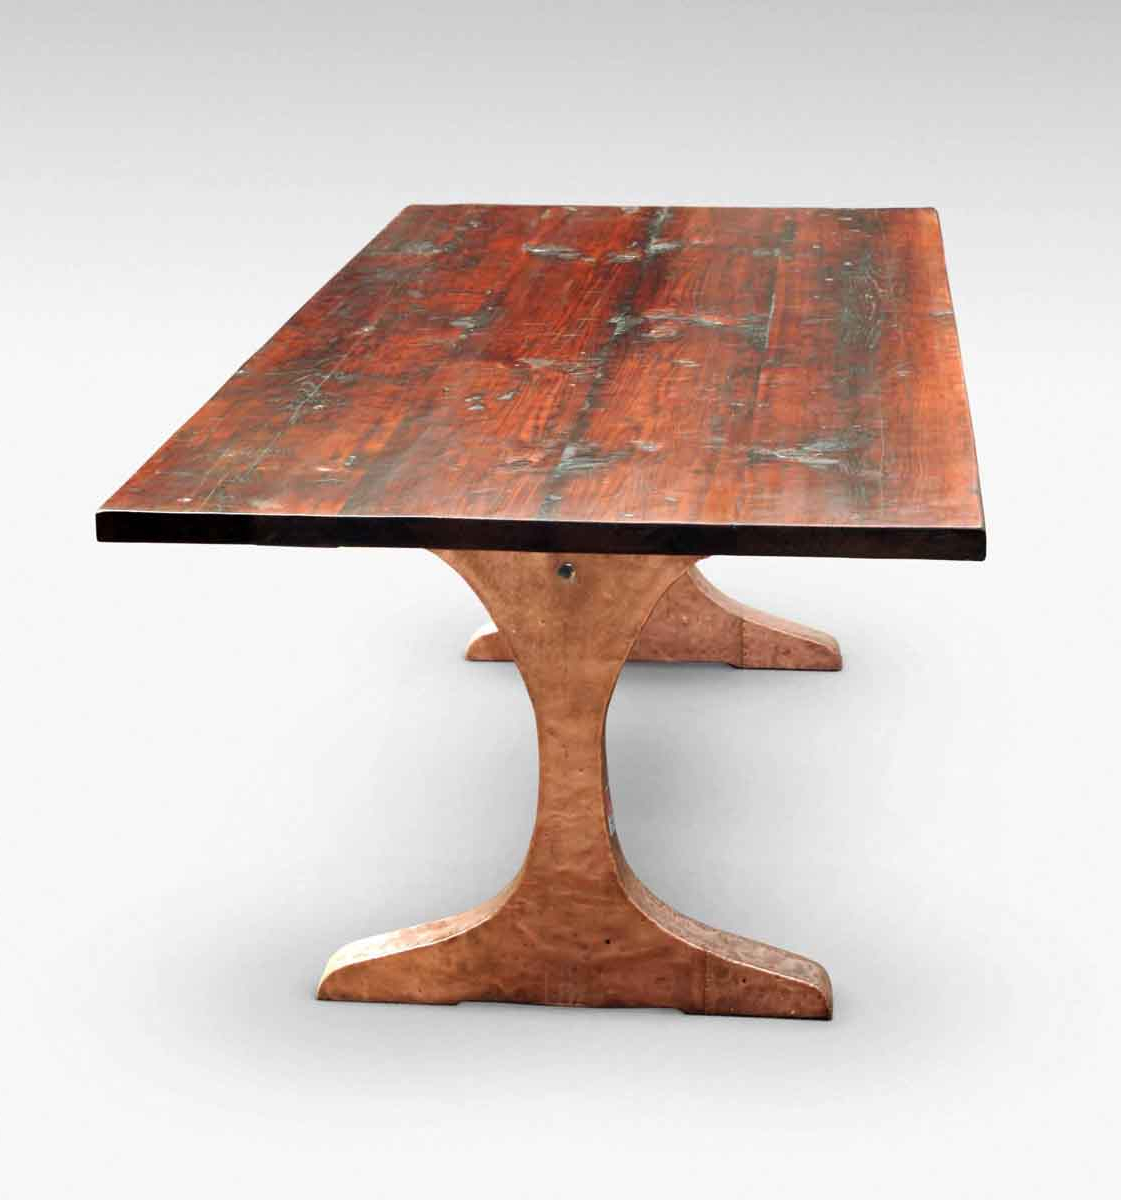 Olde Good Things Throughout Reclaimed Pine Coffee Tables (View 10 of 20)